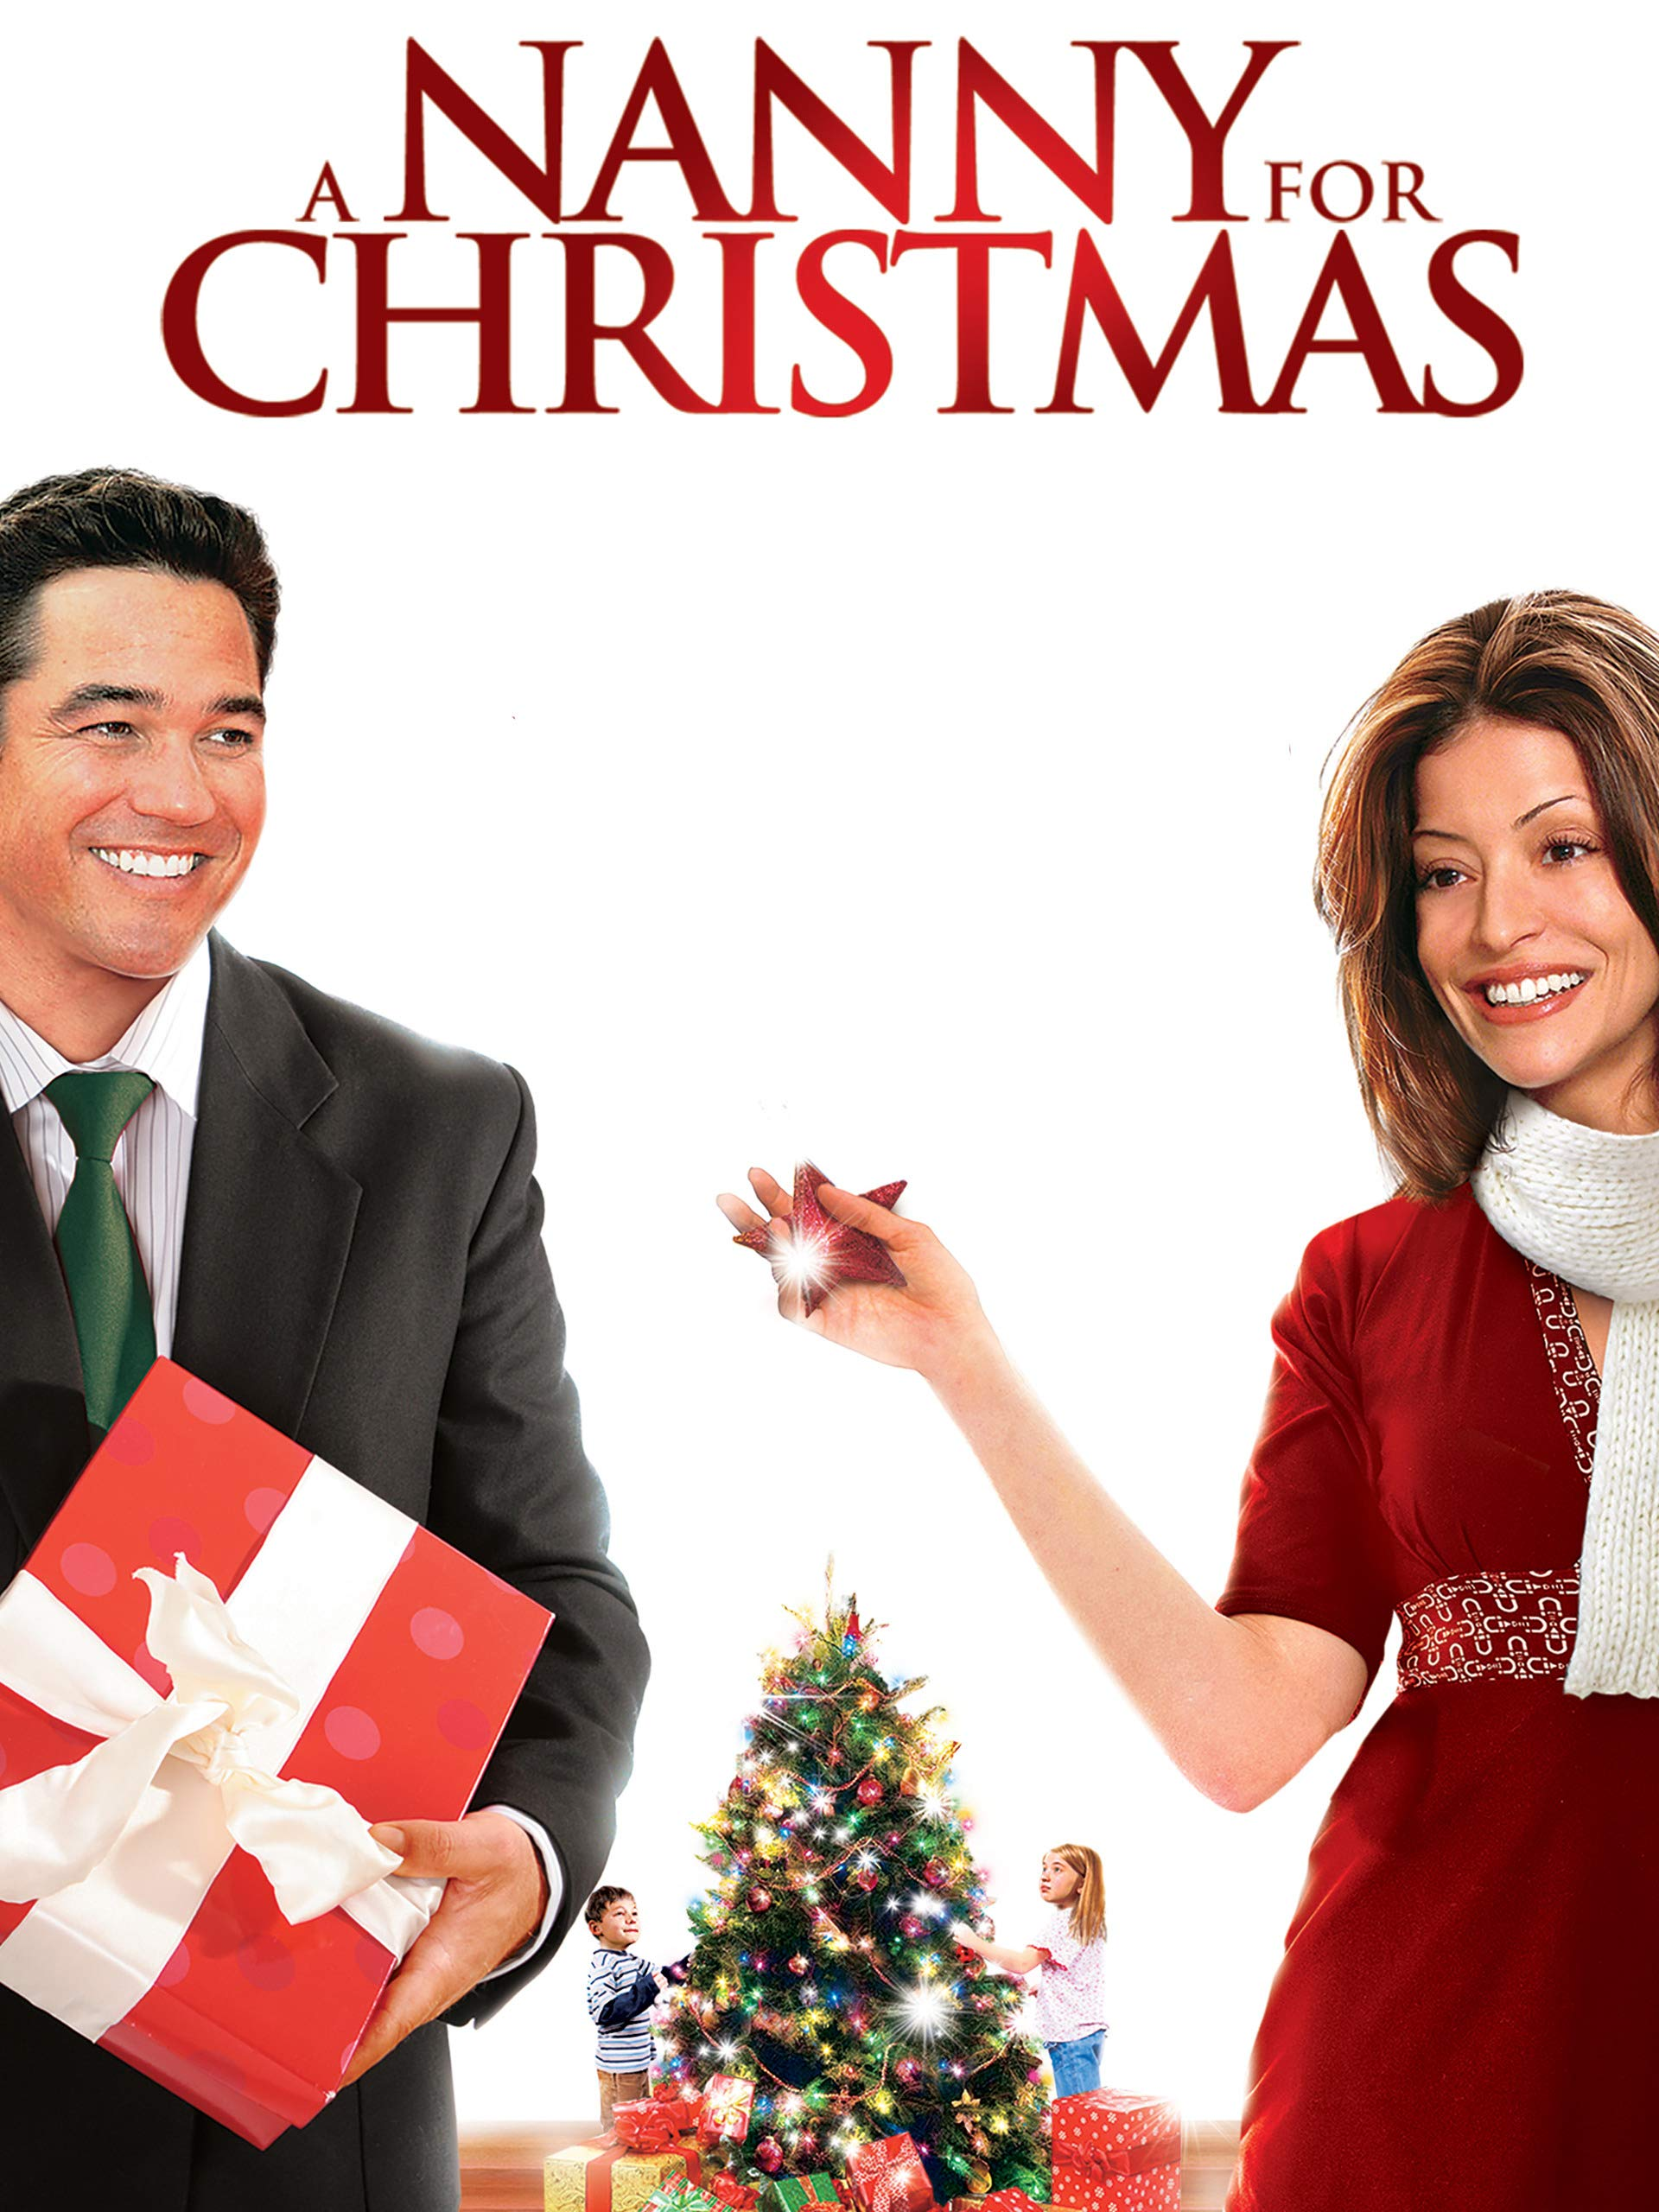 Amazon.com: A Nanny for Christmas [Español]: Dean Cain, Emmanuelle ...